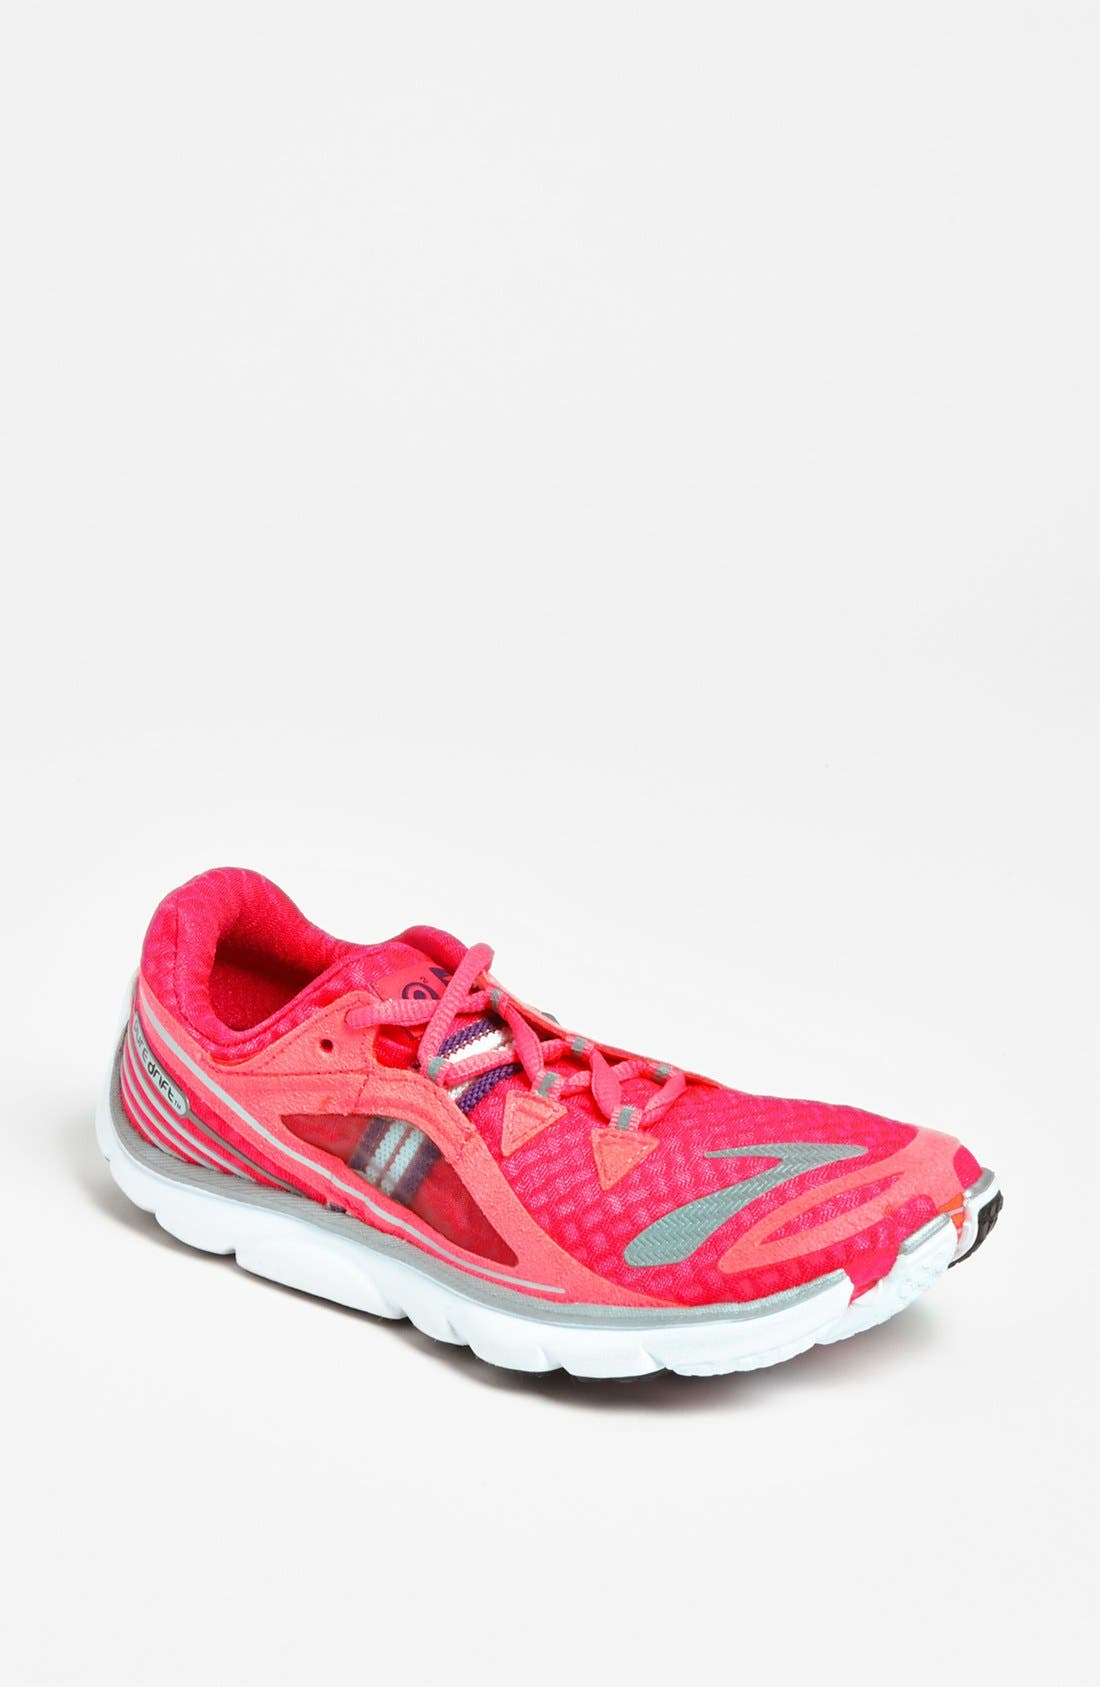 Alternate Image 1 Selected - Brooks 'PureDrift' Running Shoe (Women)